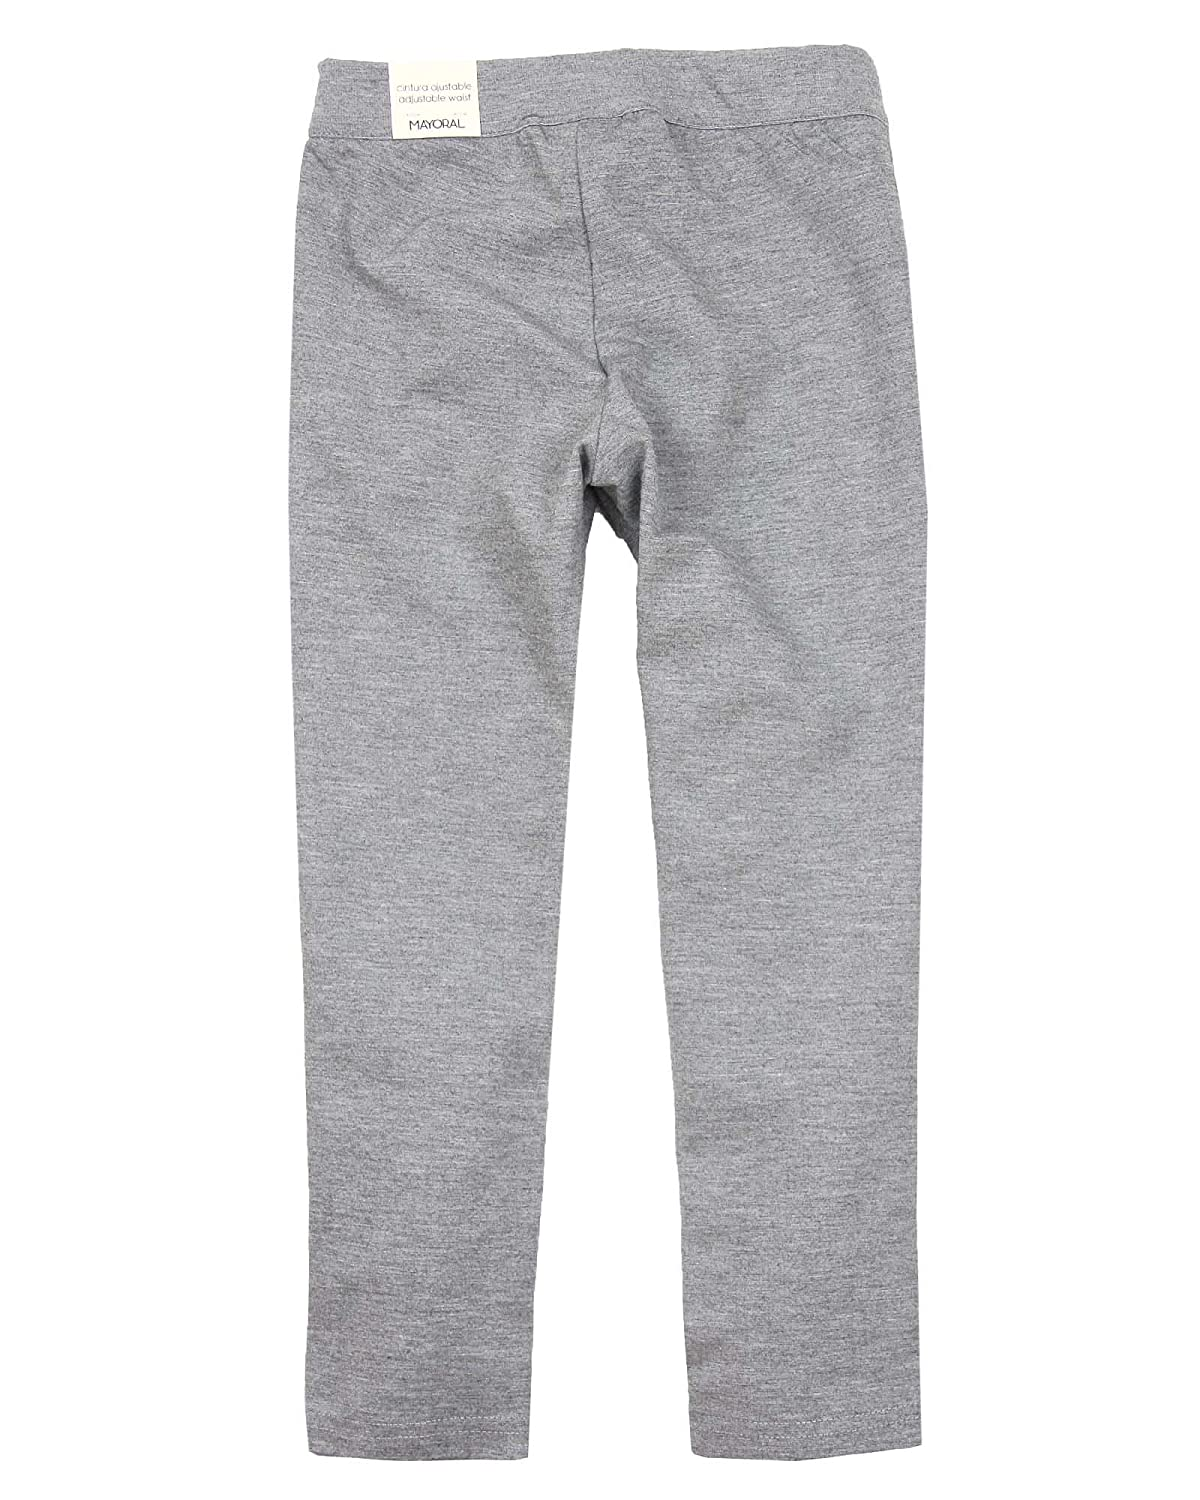 Mayoral Girls Leggings with Pleats Sizes 4-9